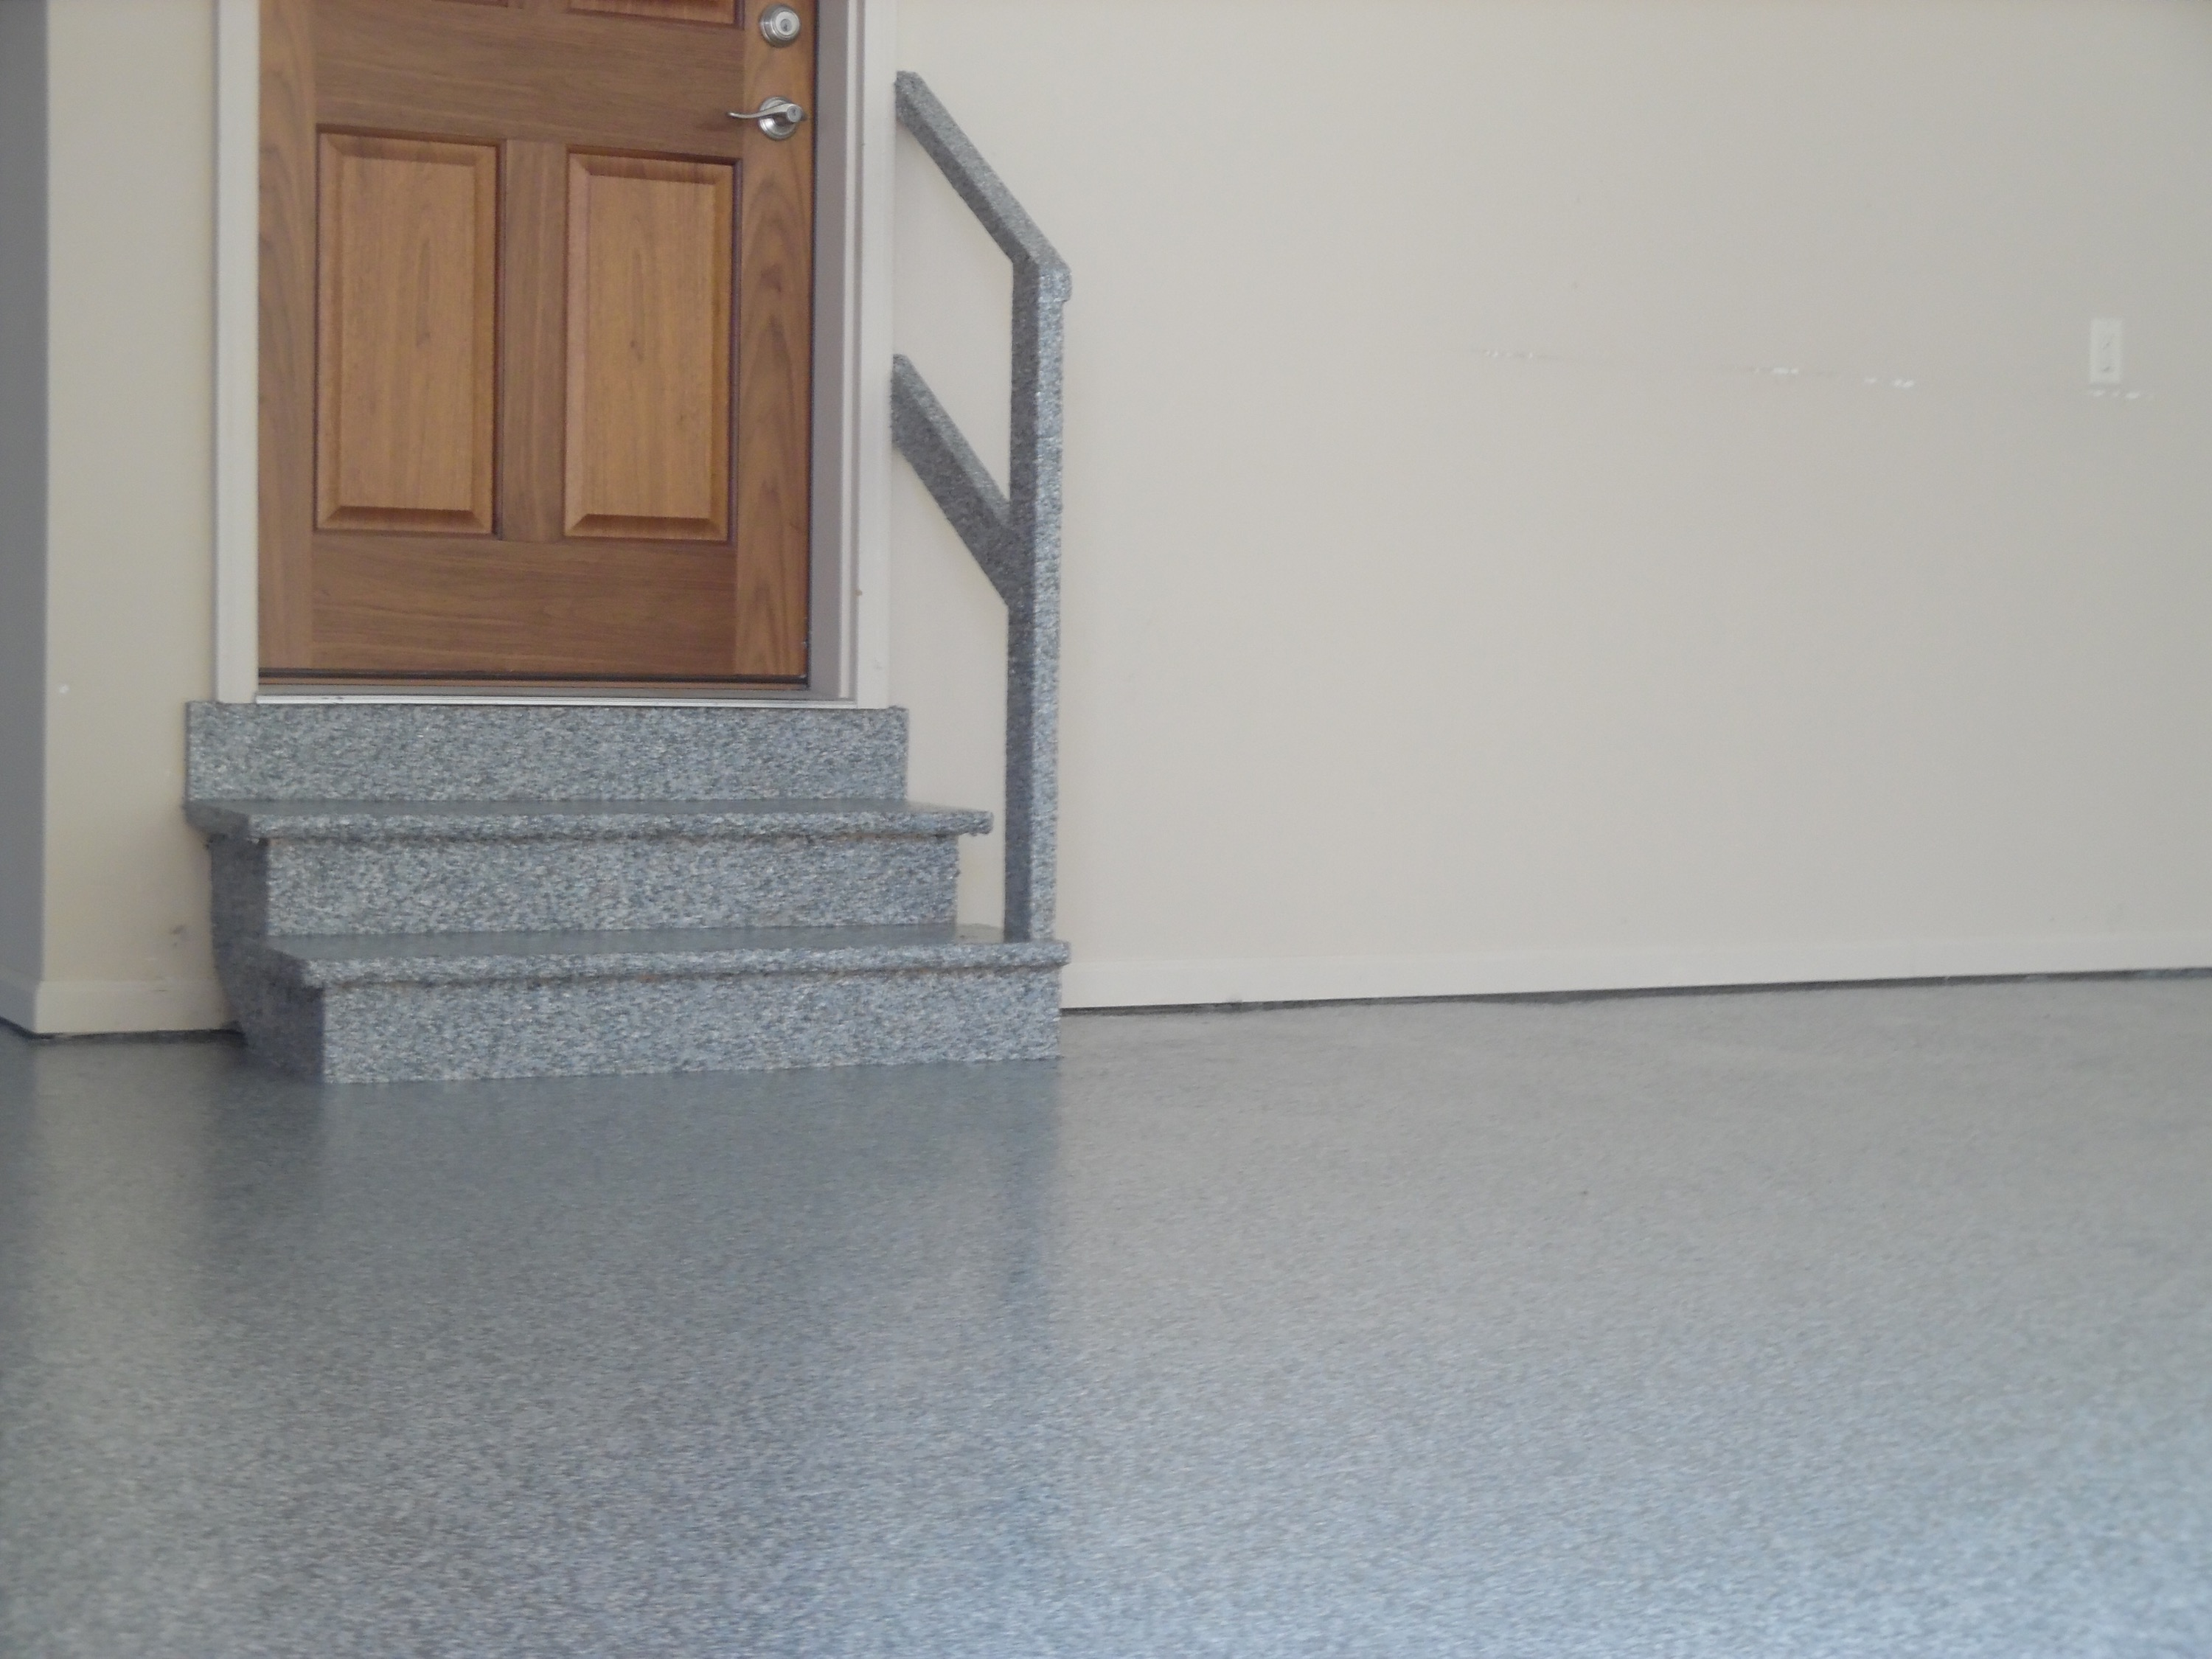 Garage Floor Epoxy Steps Garage Floor Epoxy Garage Floor Epoxy Steps